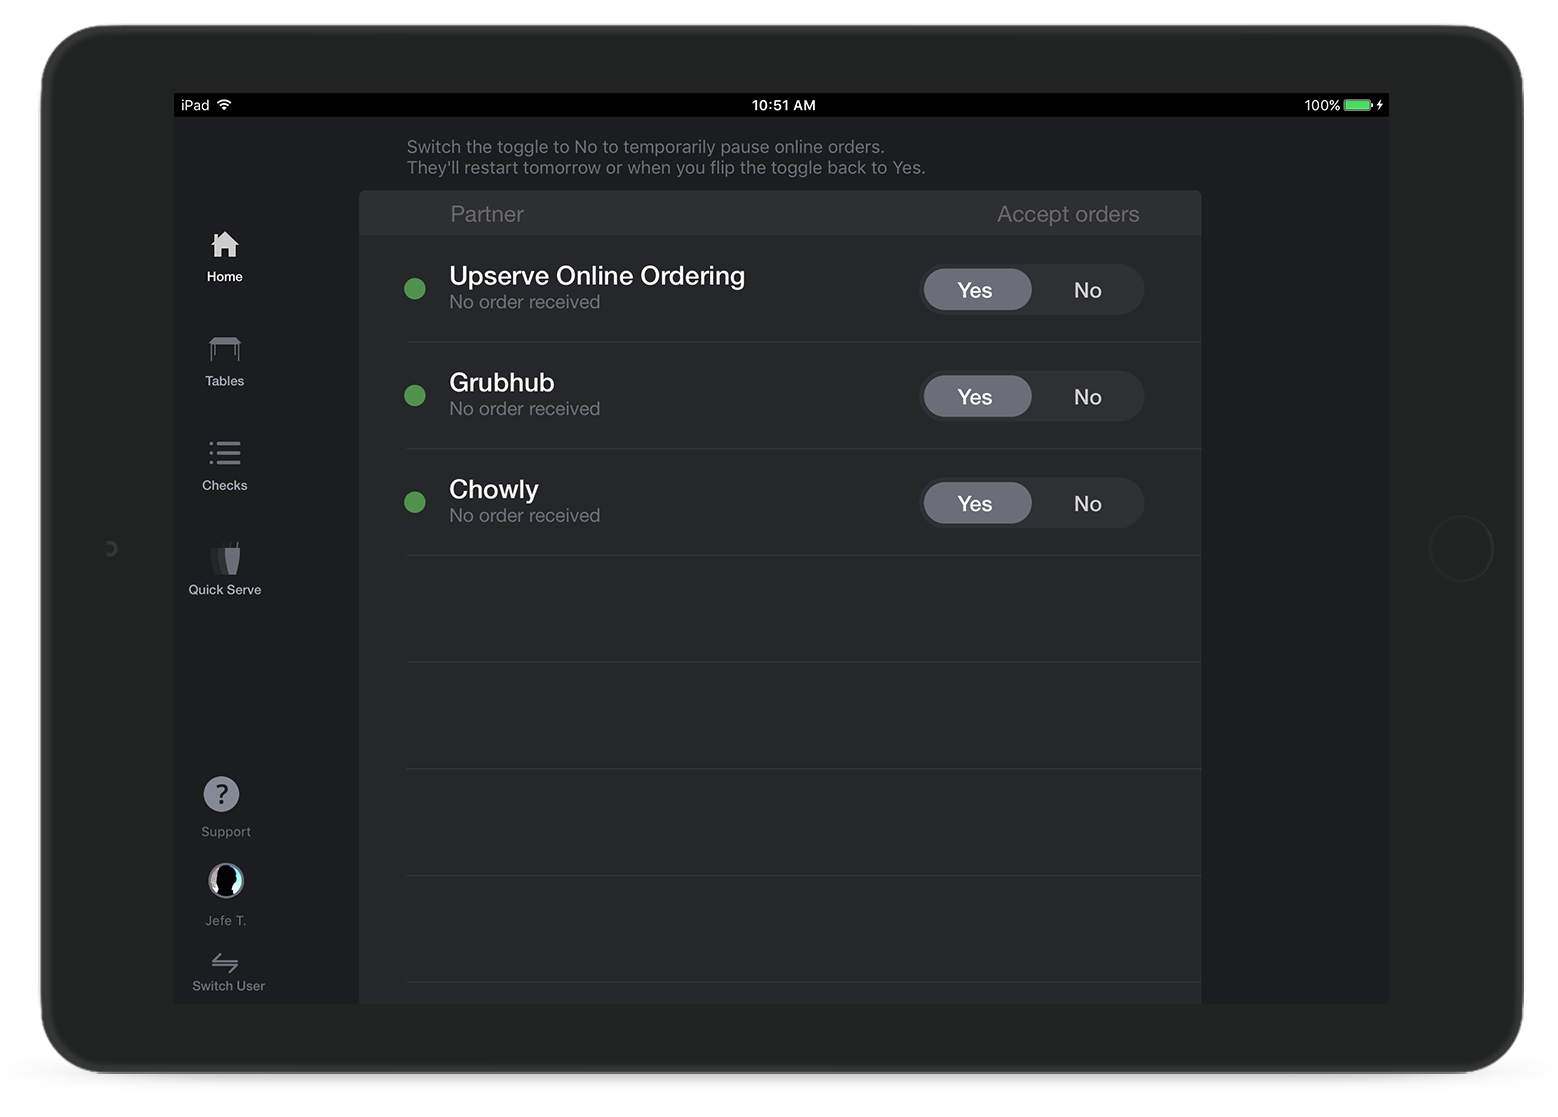 iPad with Upserve POS software's online ordering management center showing which services are enabled